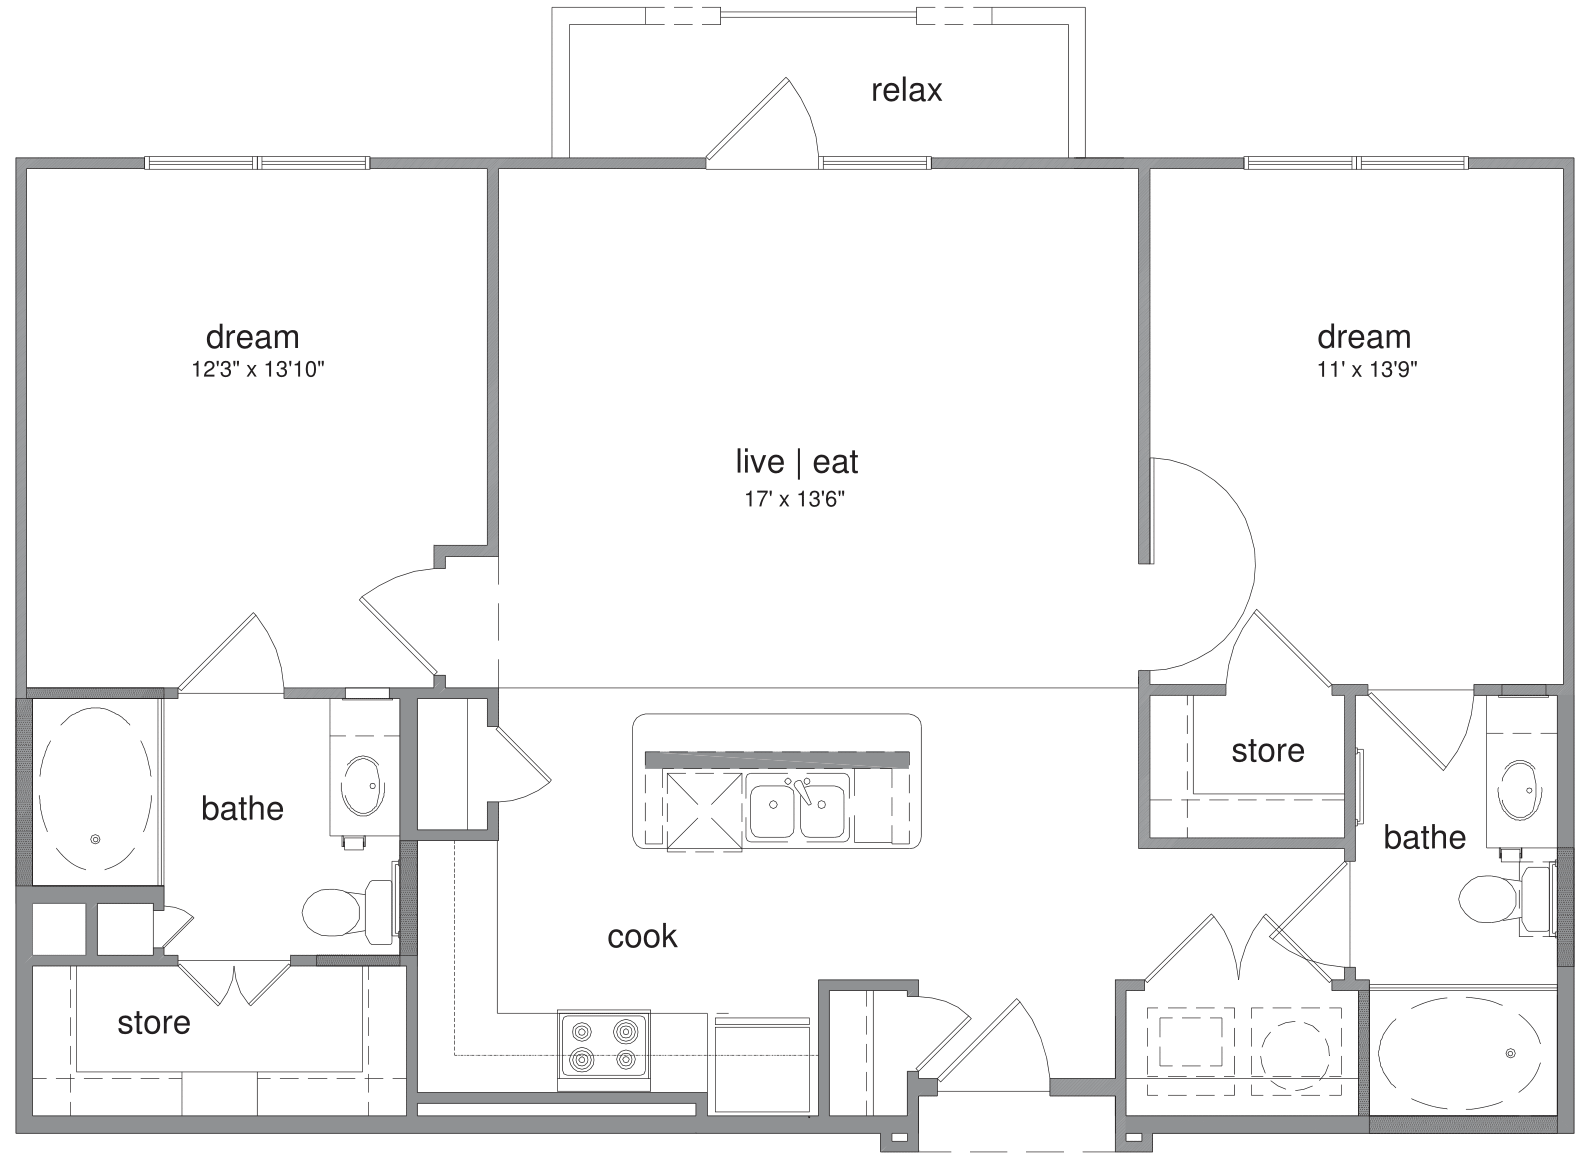 Oxford at The Boulevard - FloorPlan - Lawrence